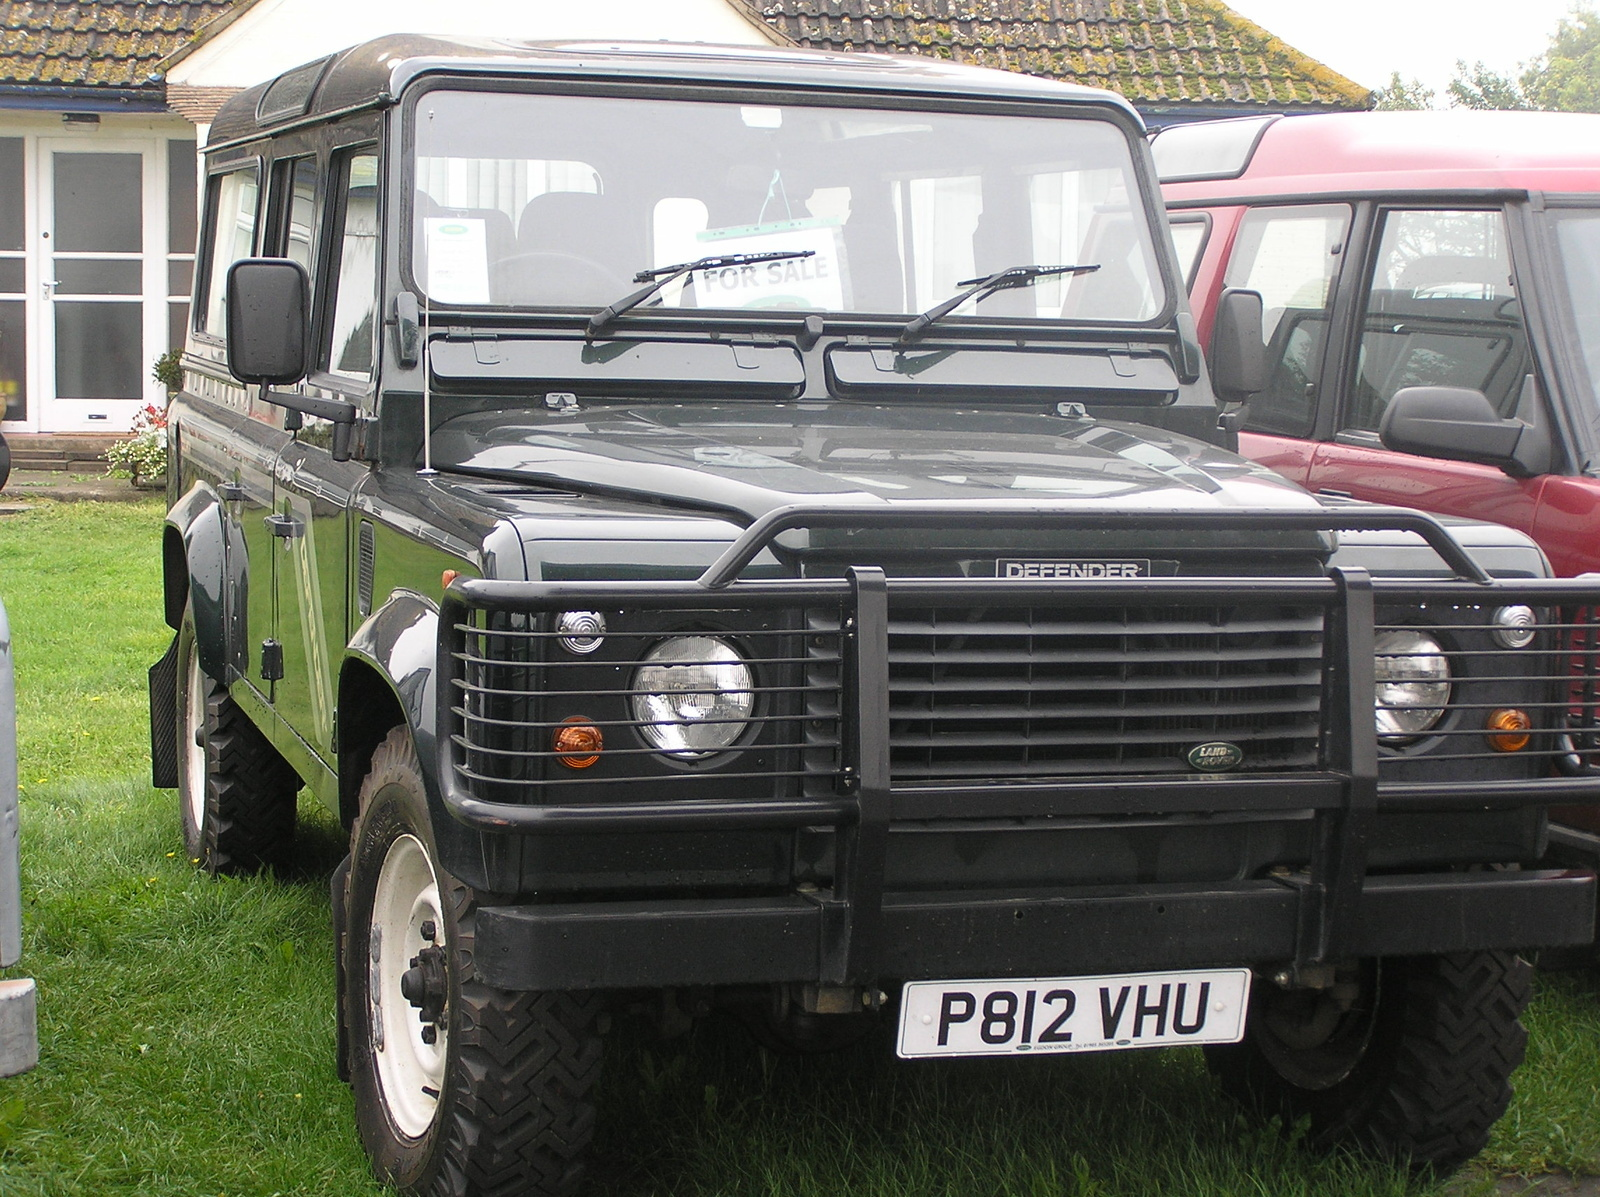 1997 Land Rover Defender - Overview - CarGurus